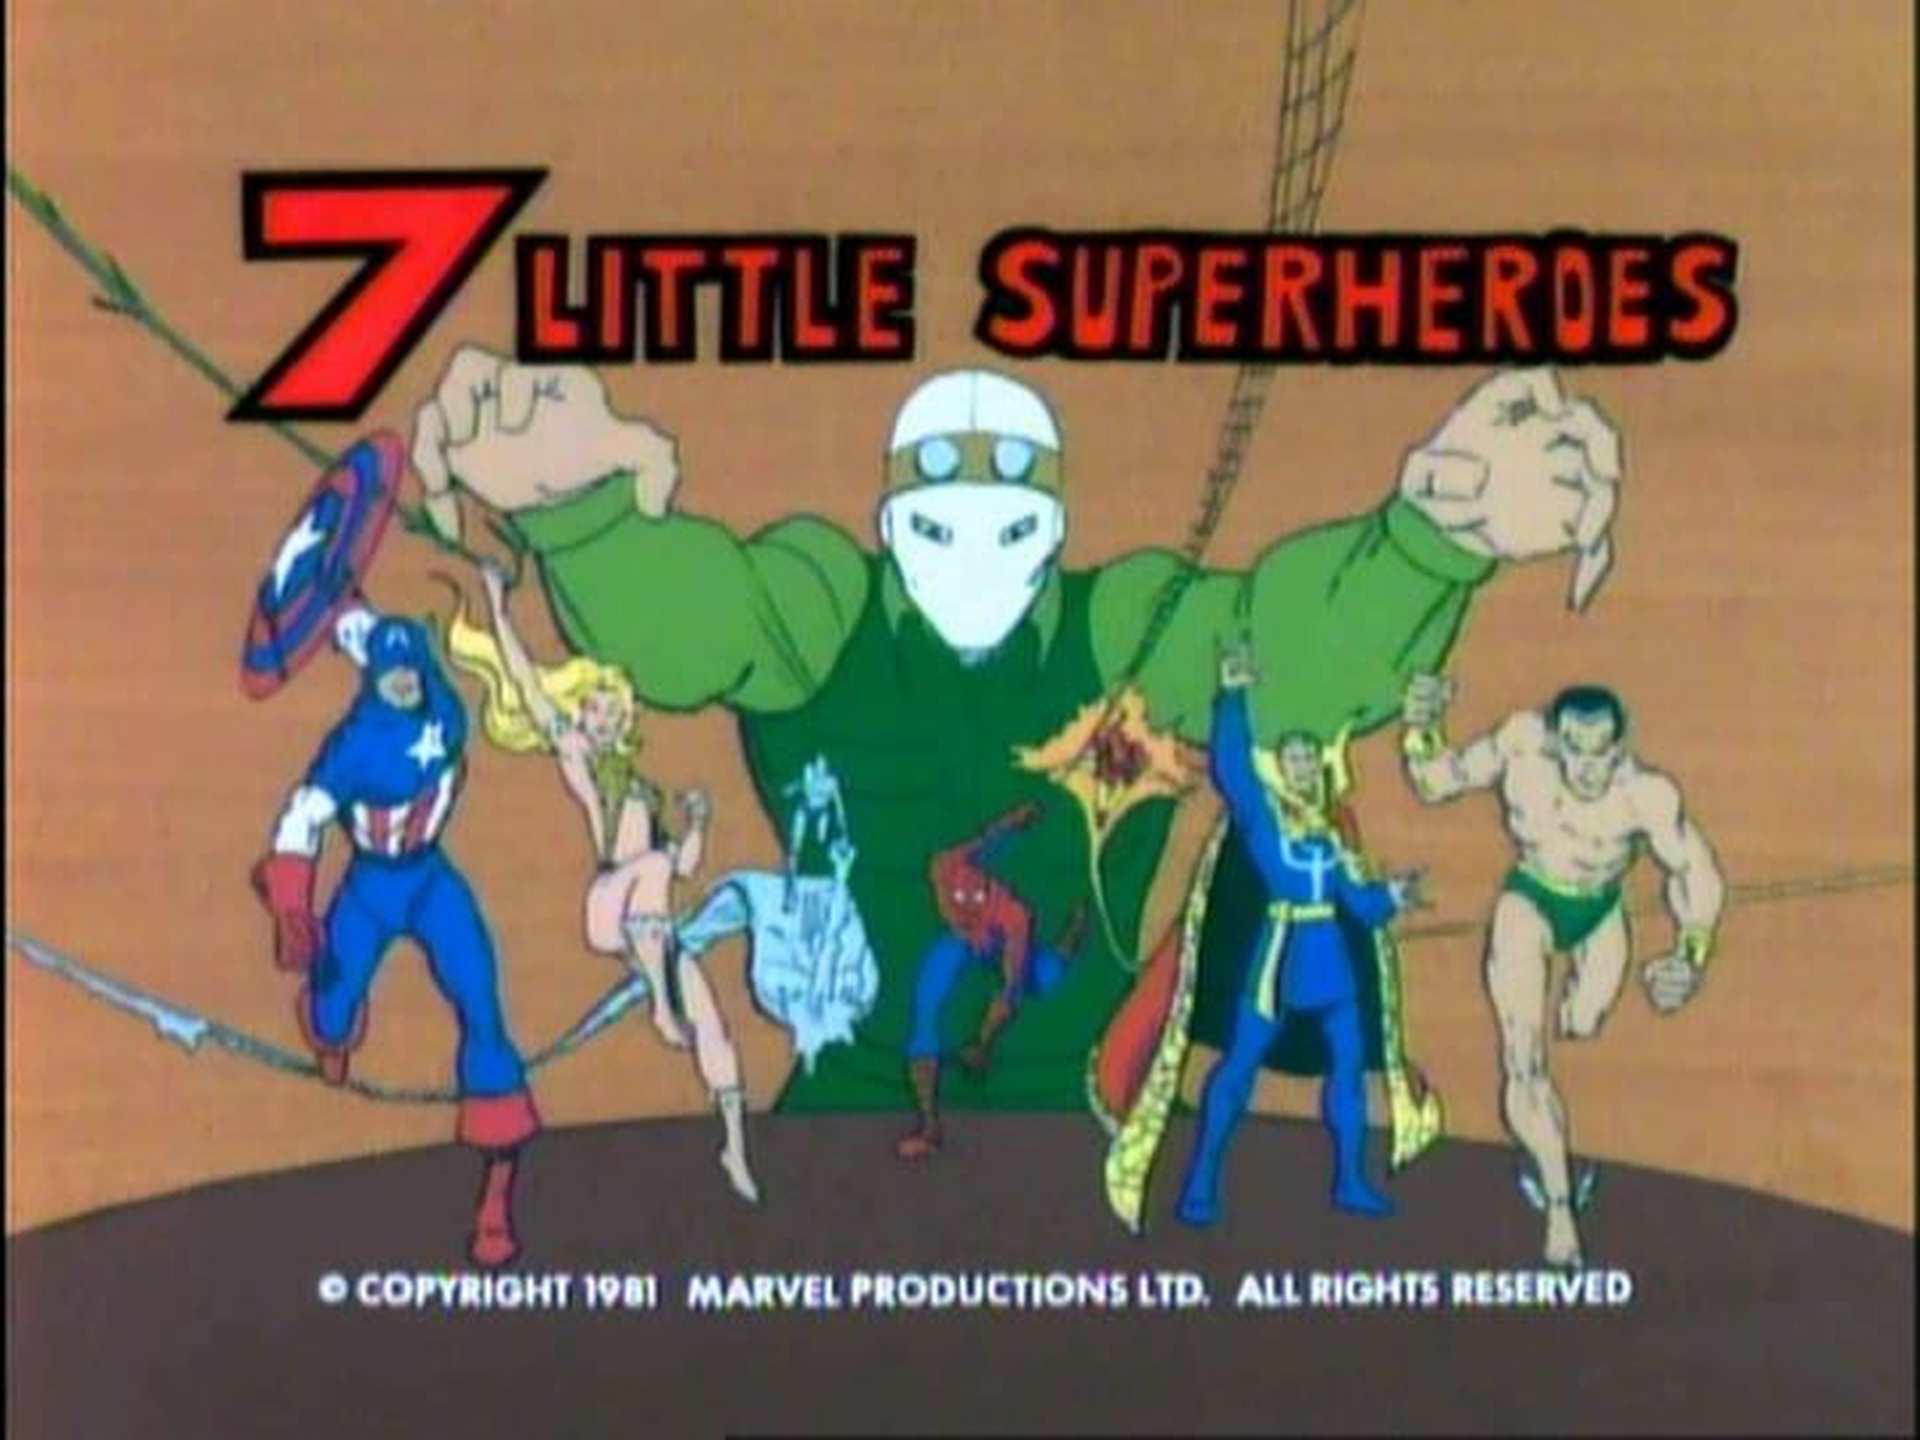 7 Little Superheroes